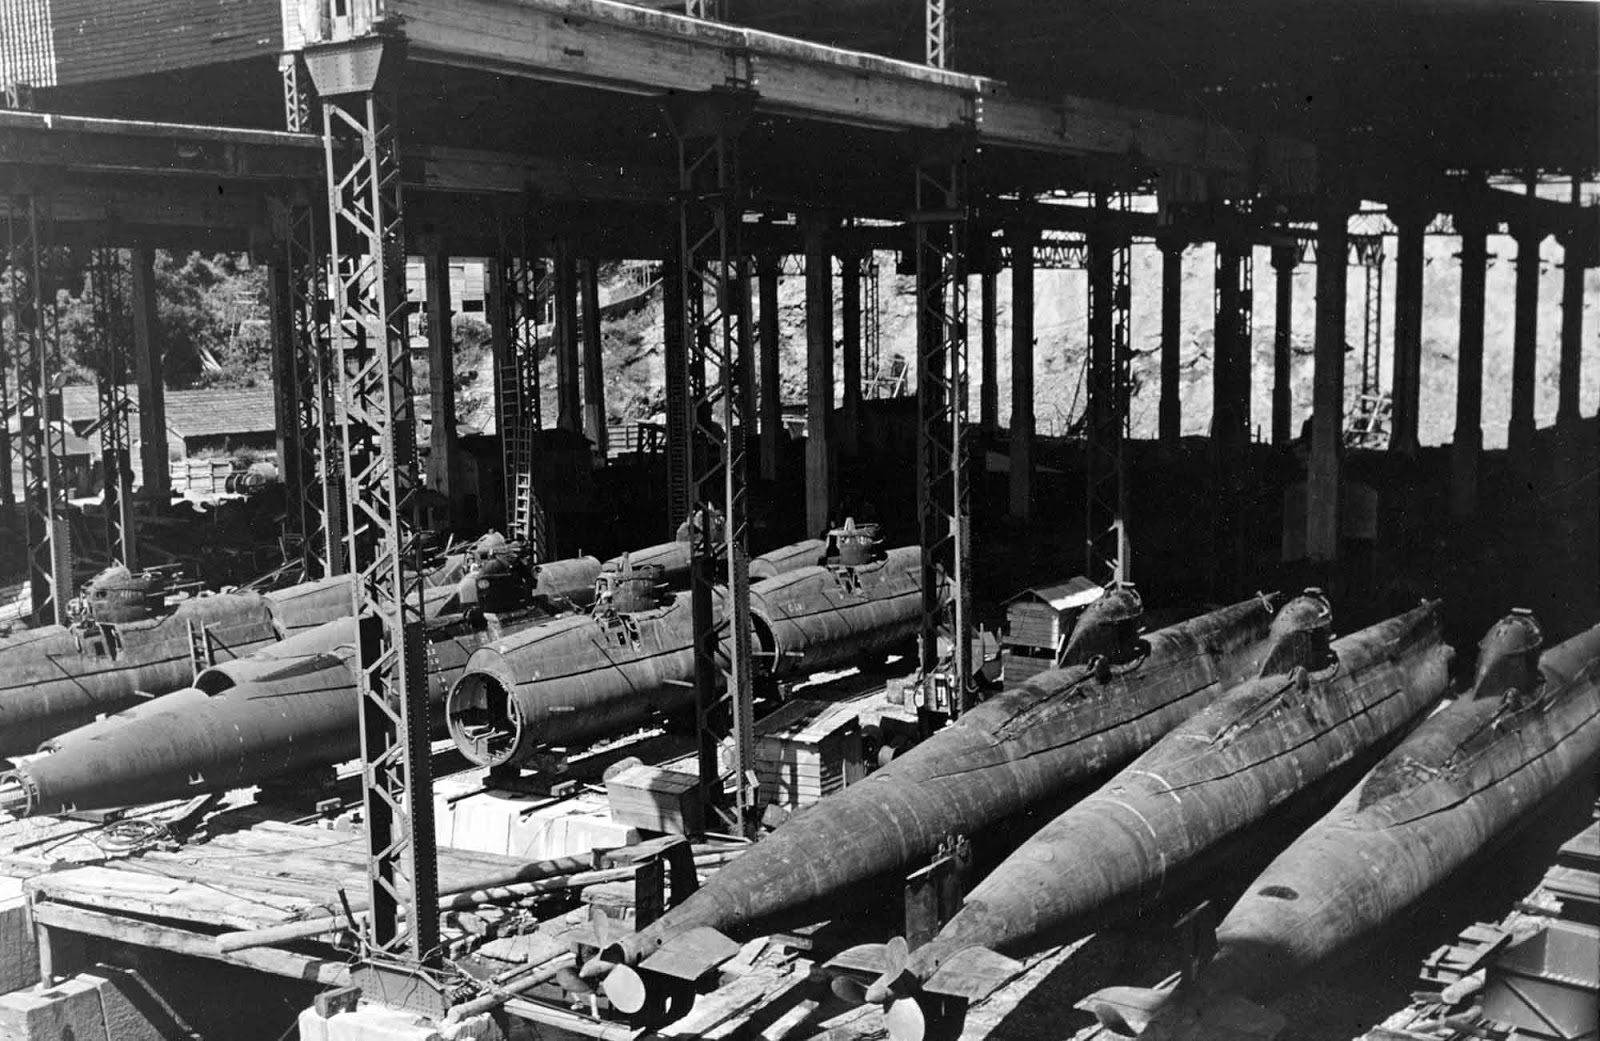 In an assembly shed at the Mitsubishi shipyard, Nagasaki. This shop contained approximately fifteen nearly complete boats, and assemblies for many more.